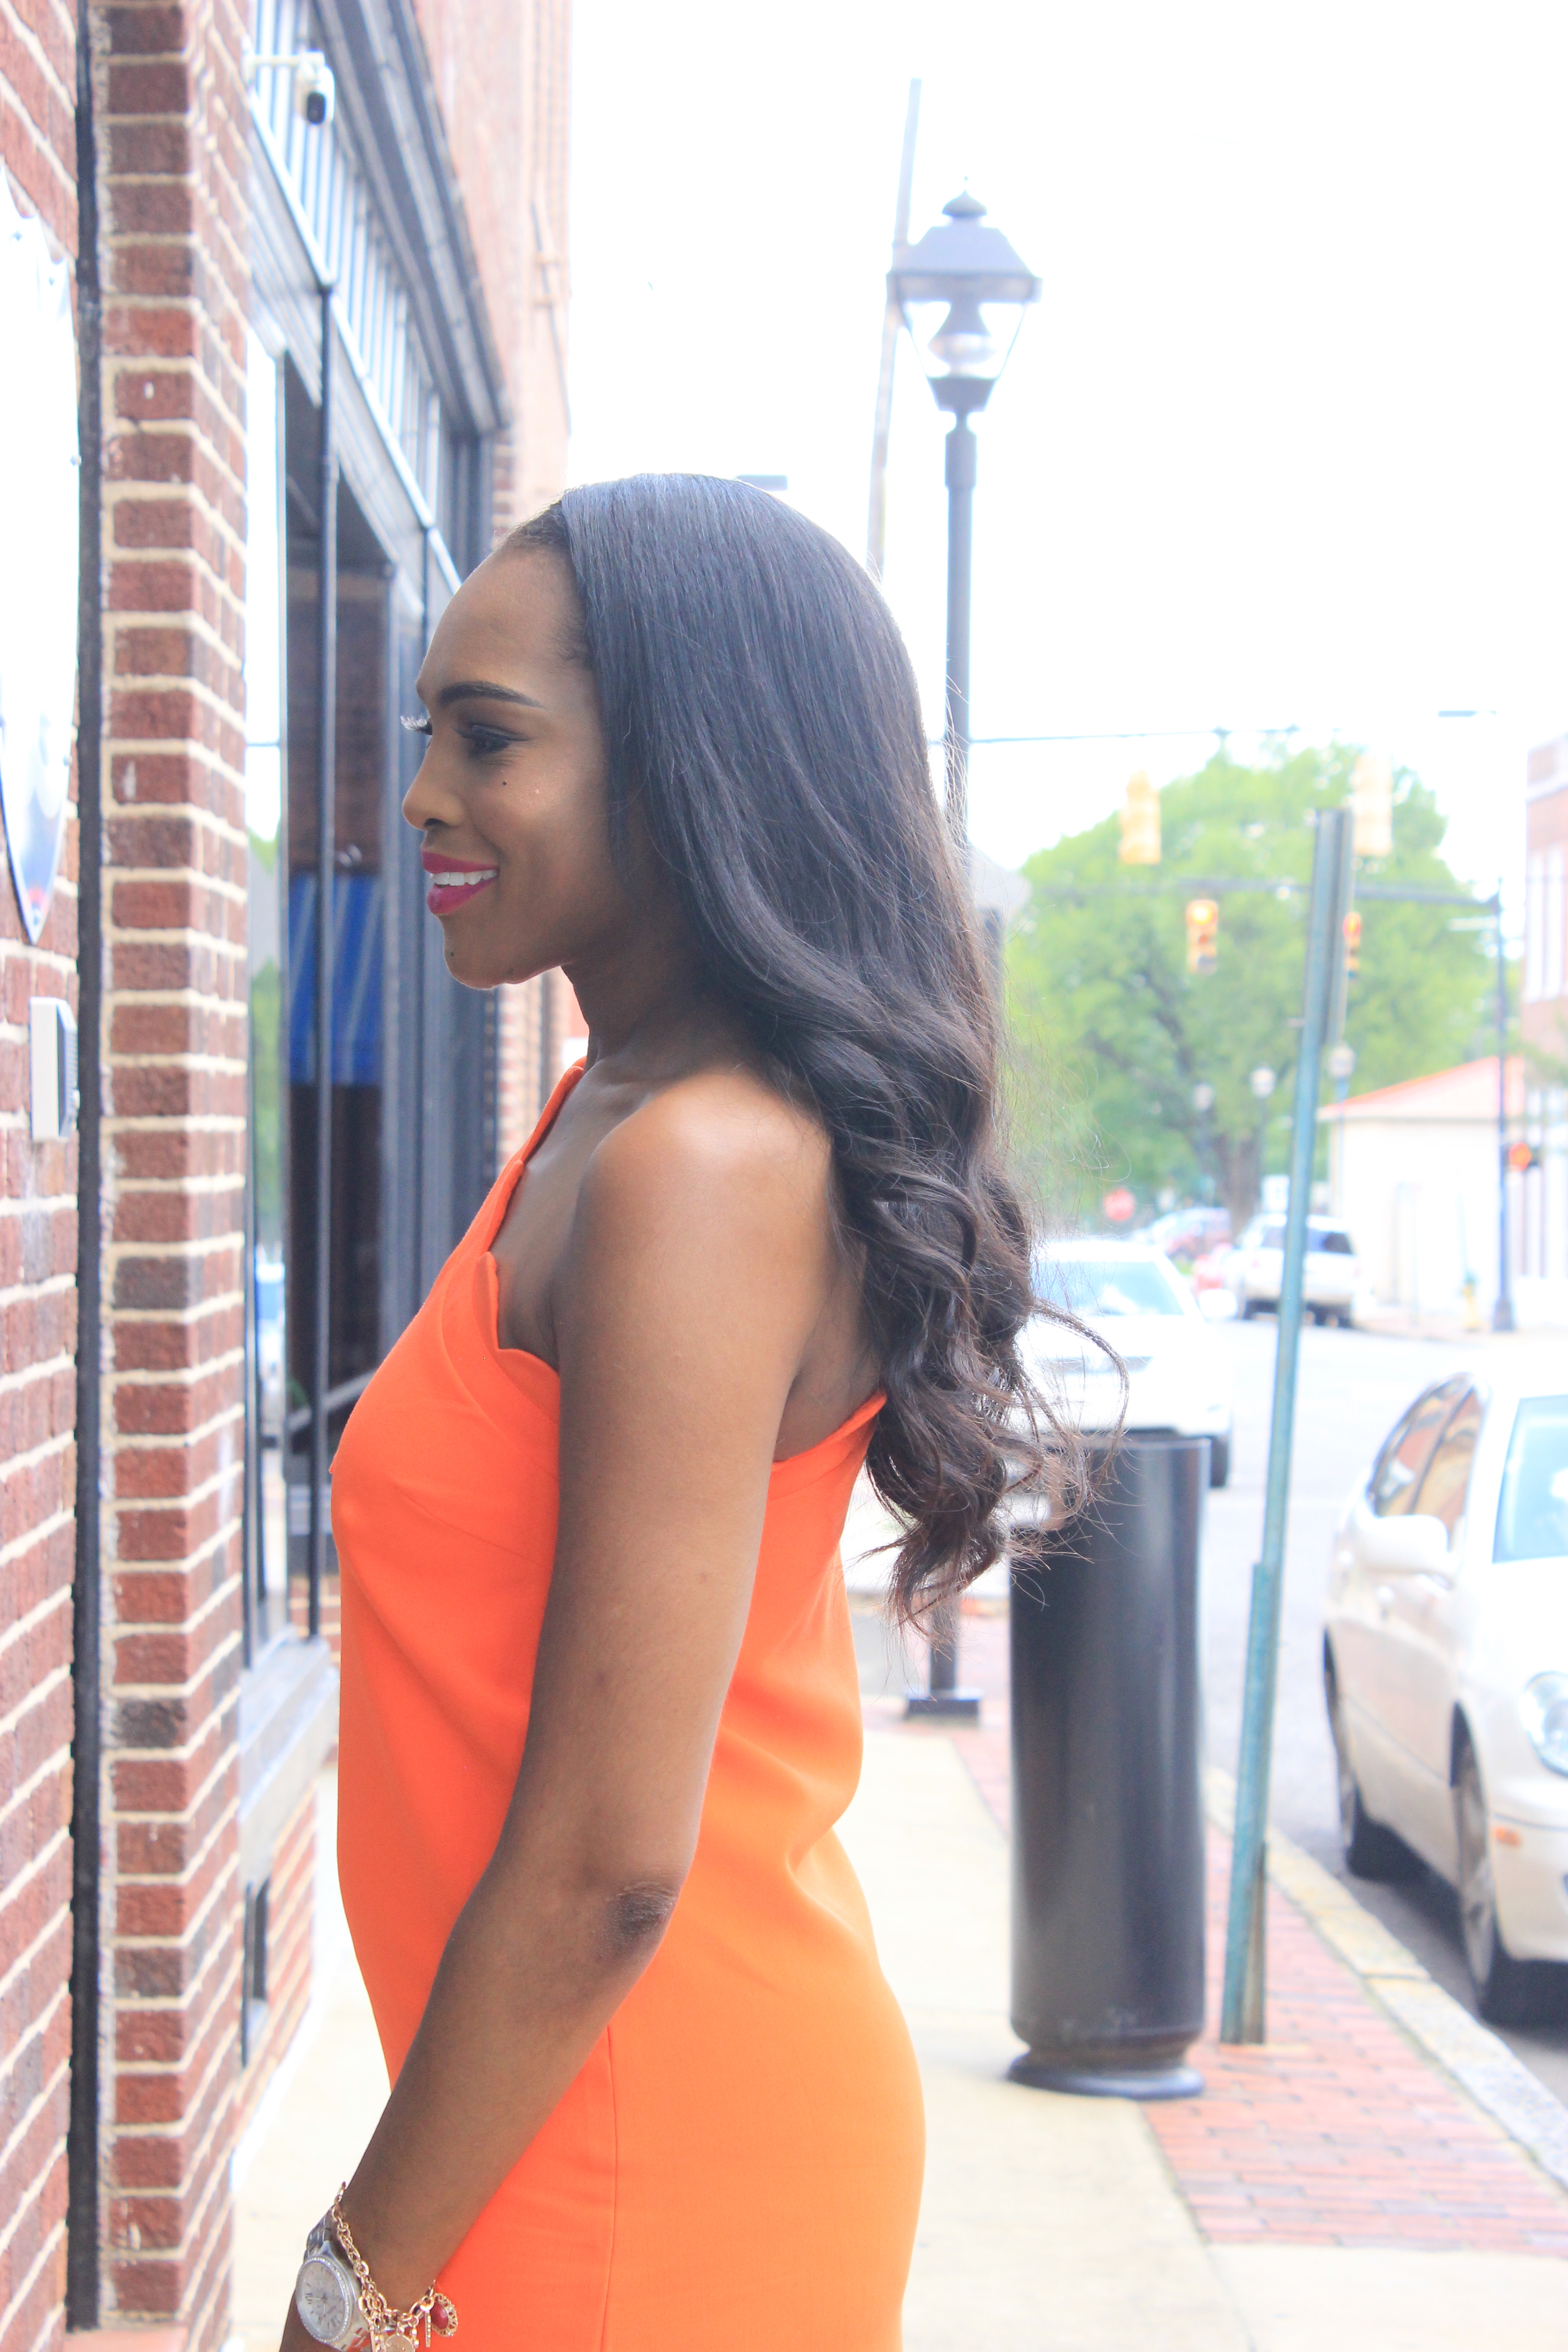 Style-Files-Orange-One Shoulder Dress-with-Bow and-Scallop-Trim-Victoria Beckham-for-Target-How-to-wear-victoria-beckham-for-target-Victoria-Beckham-for-Target-Review-Justfab-orange-kati-ankle-strap-sandals-oohlalablog-6